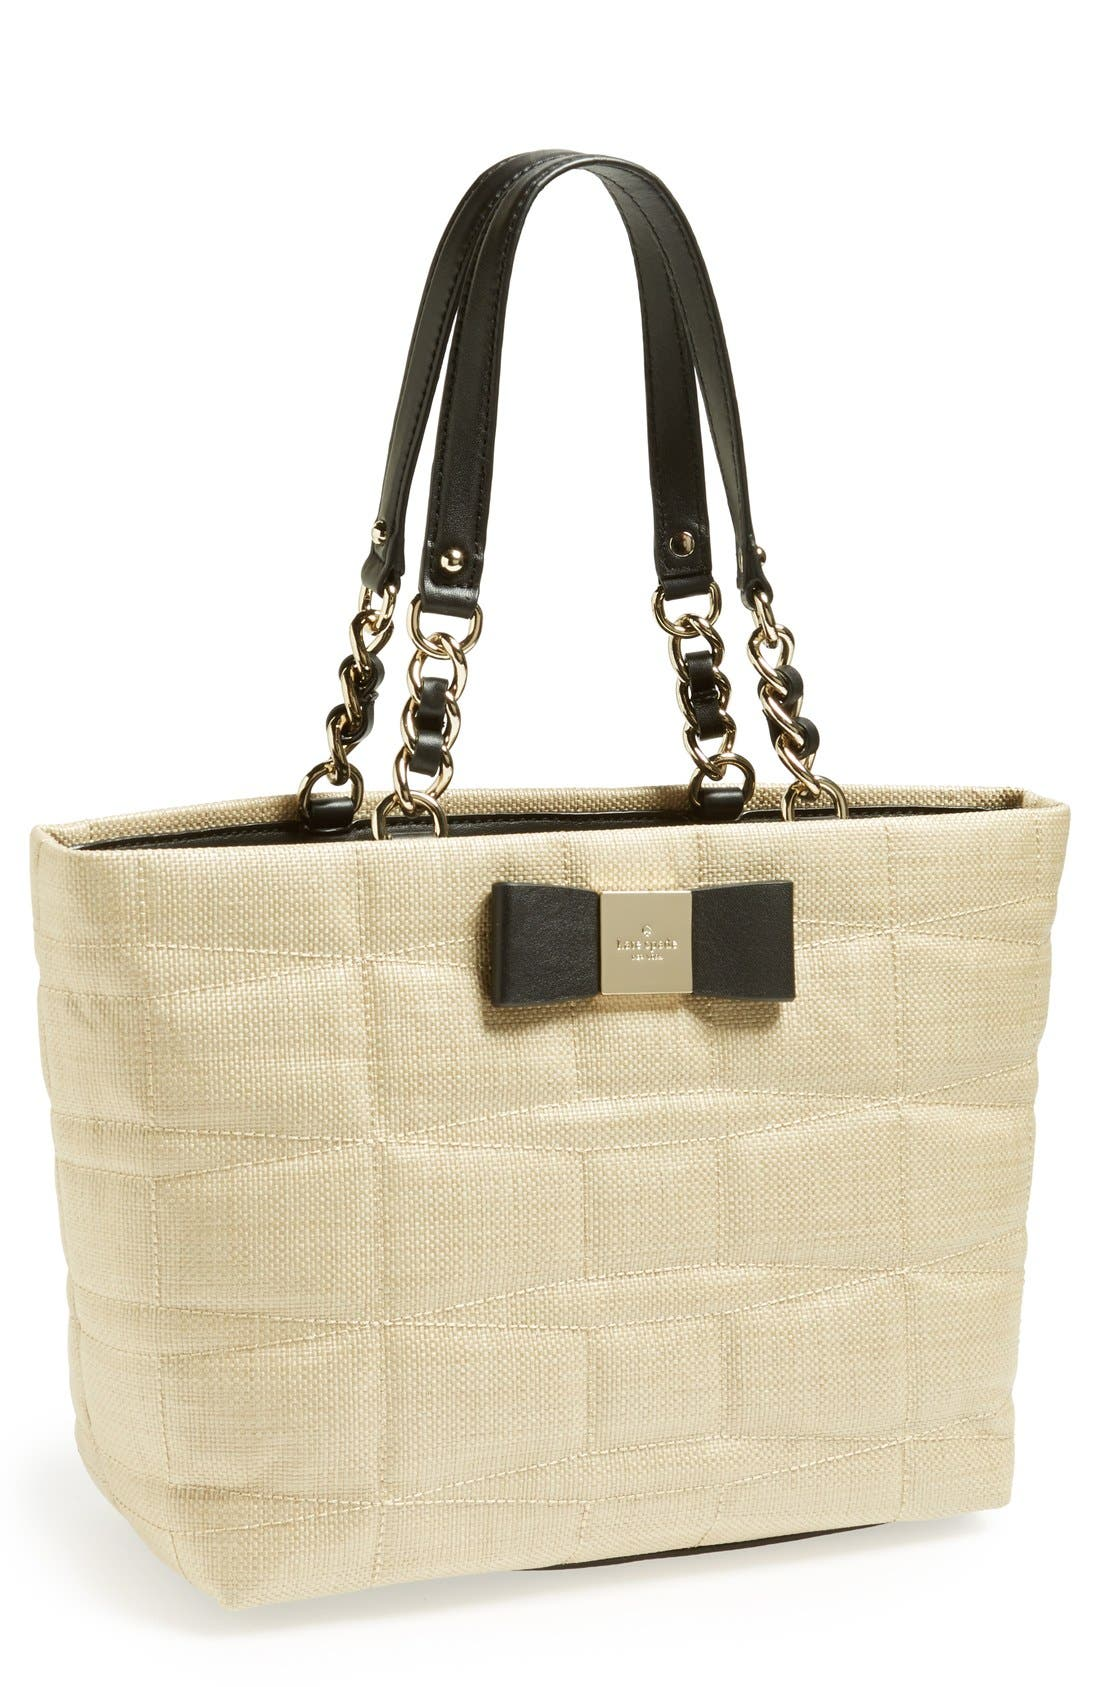 Alternate Image 1 Selected - kate spade new york 'small francis' straw tote